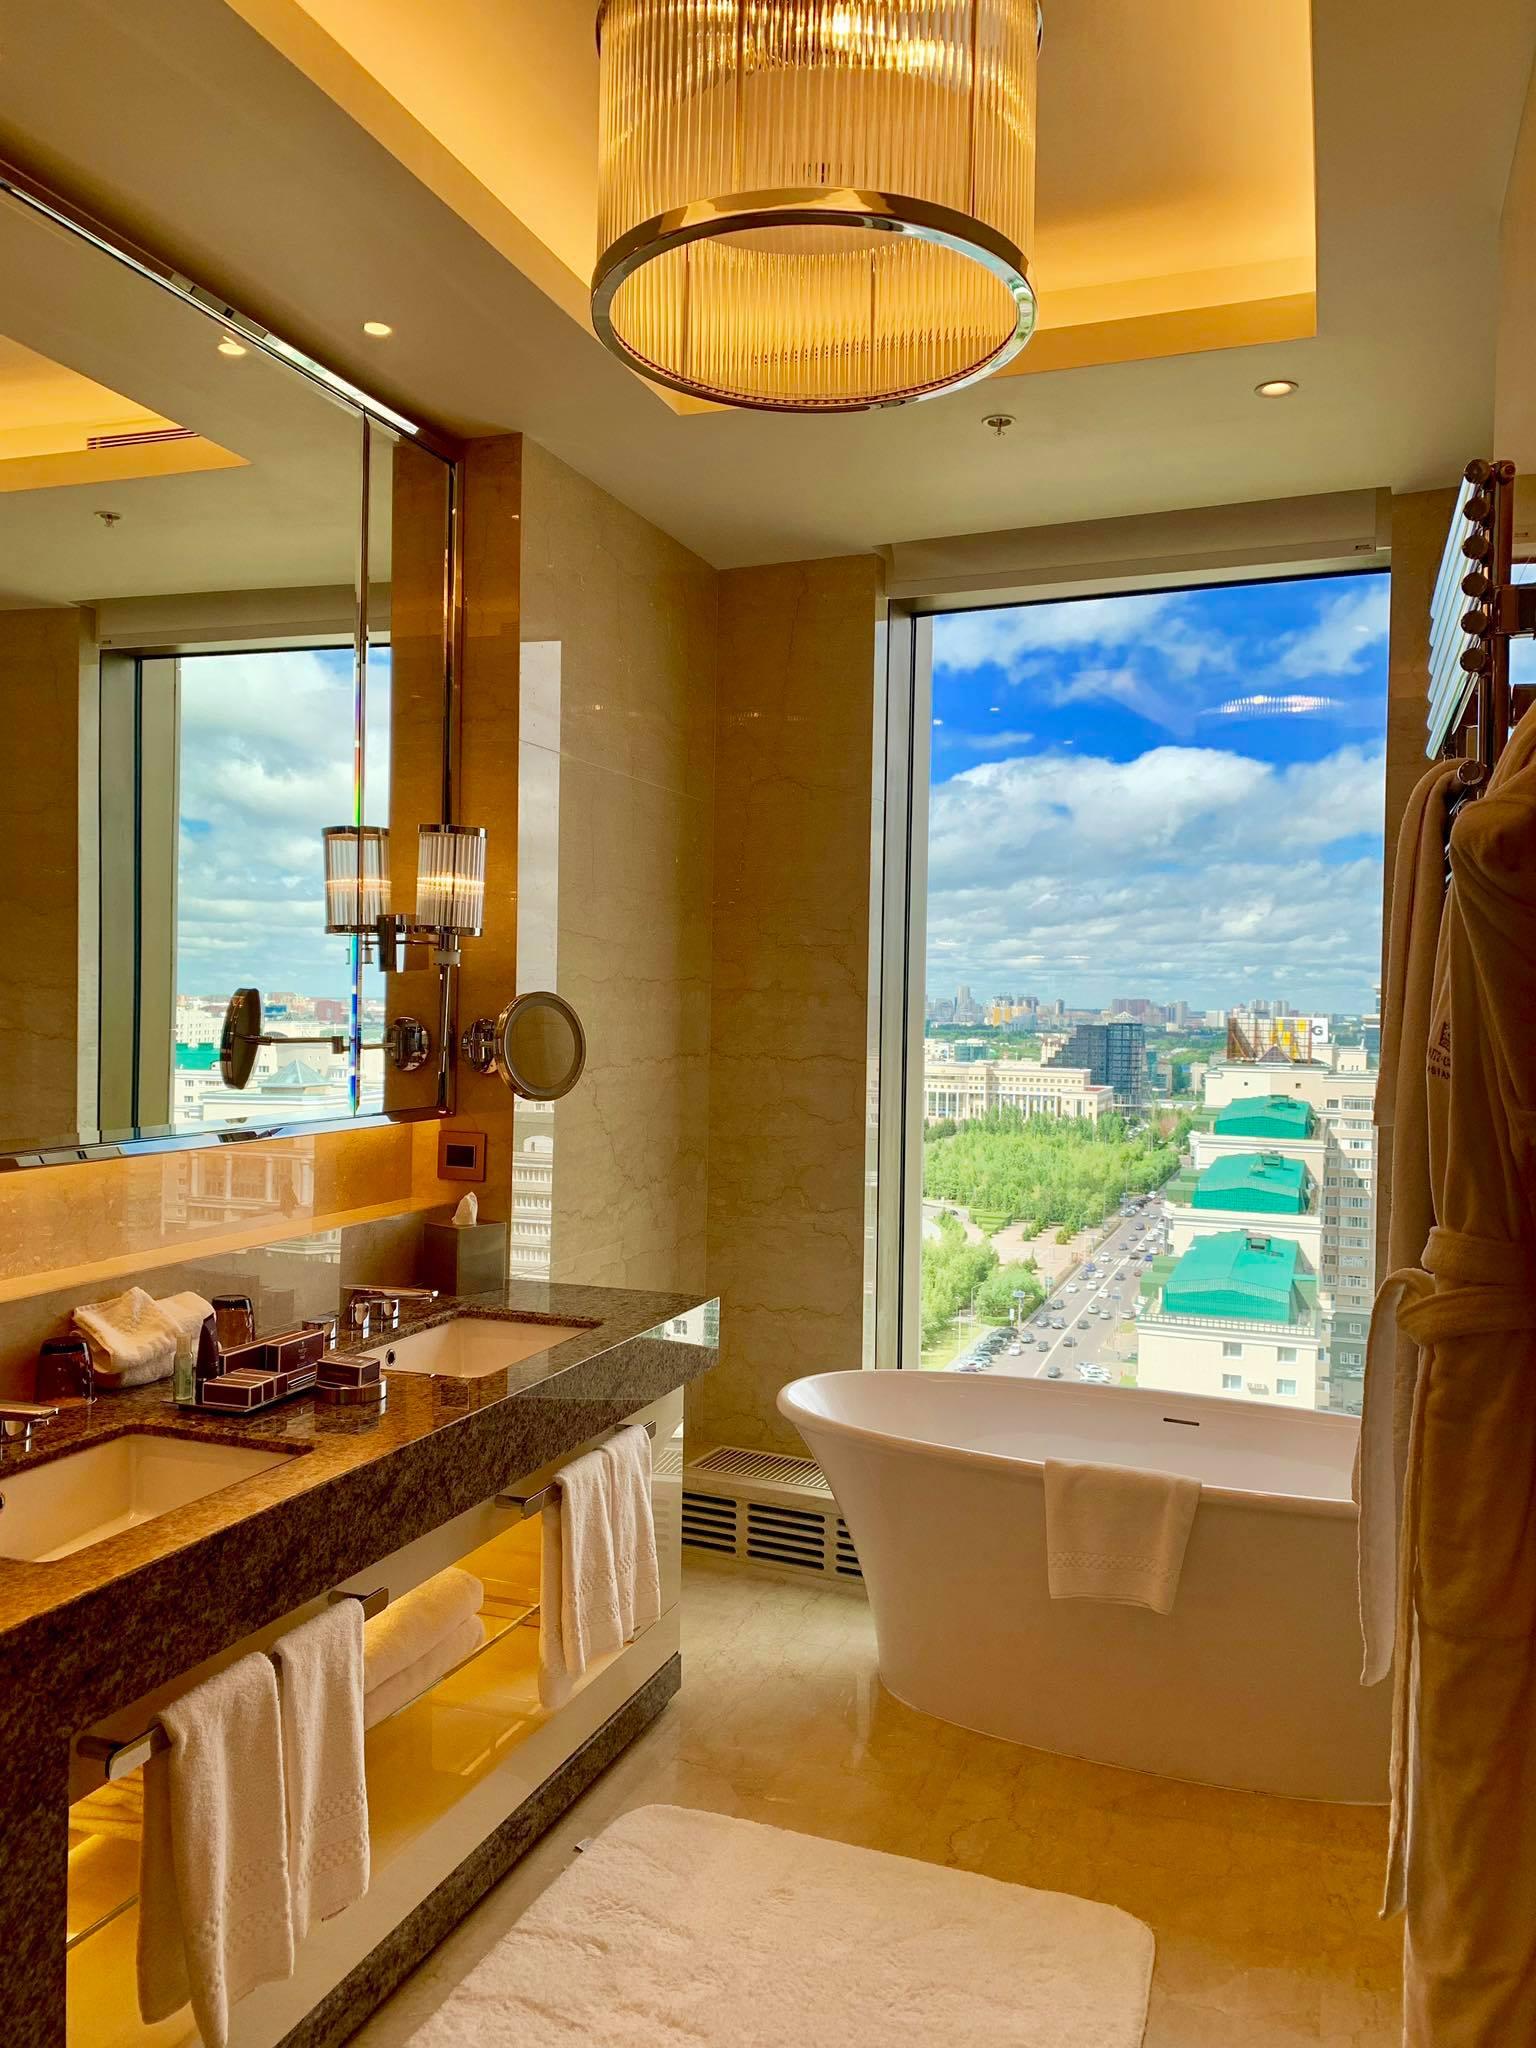 My Experience Staying at The Ritz Carlton Astana14